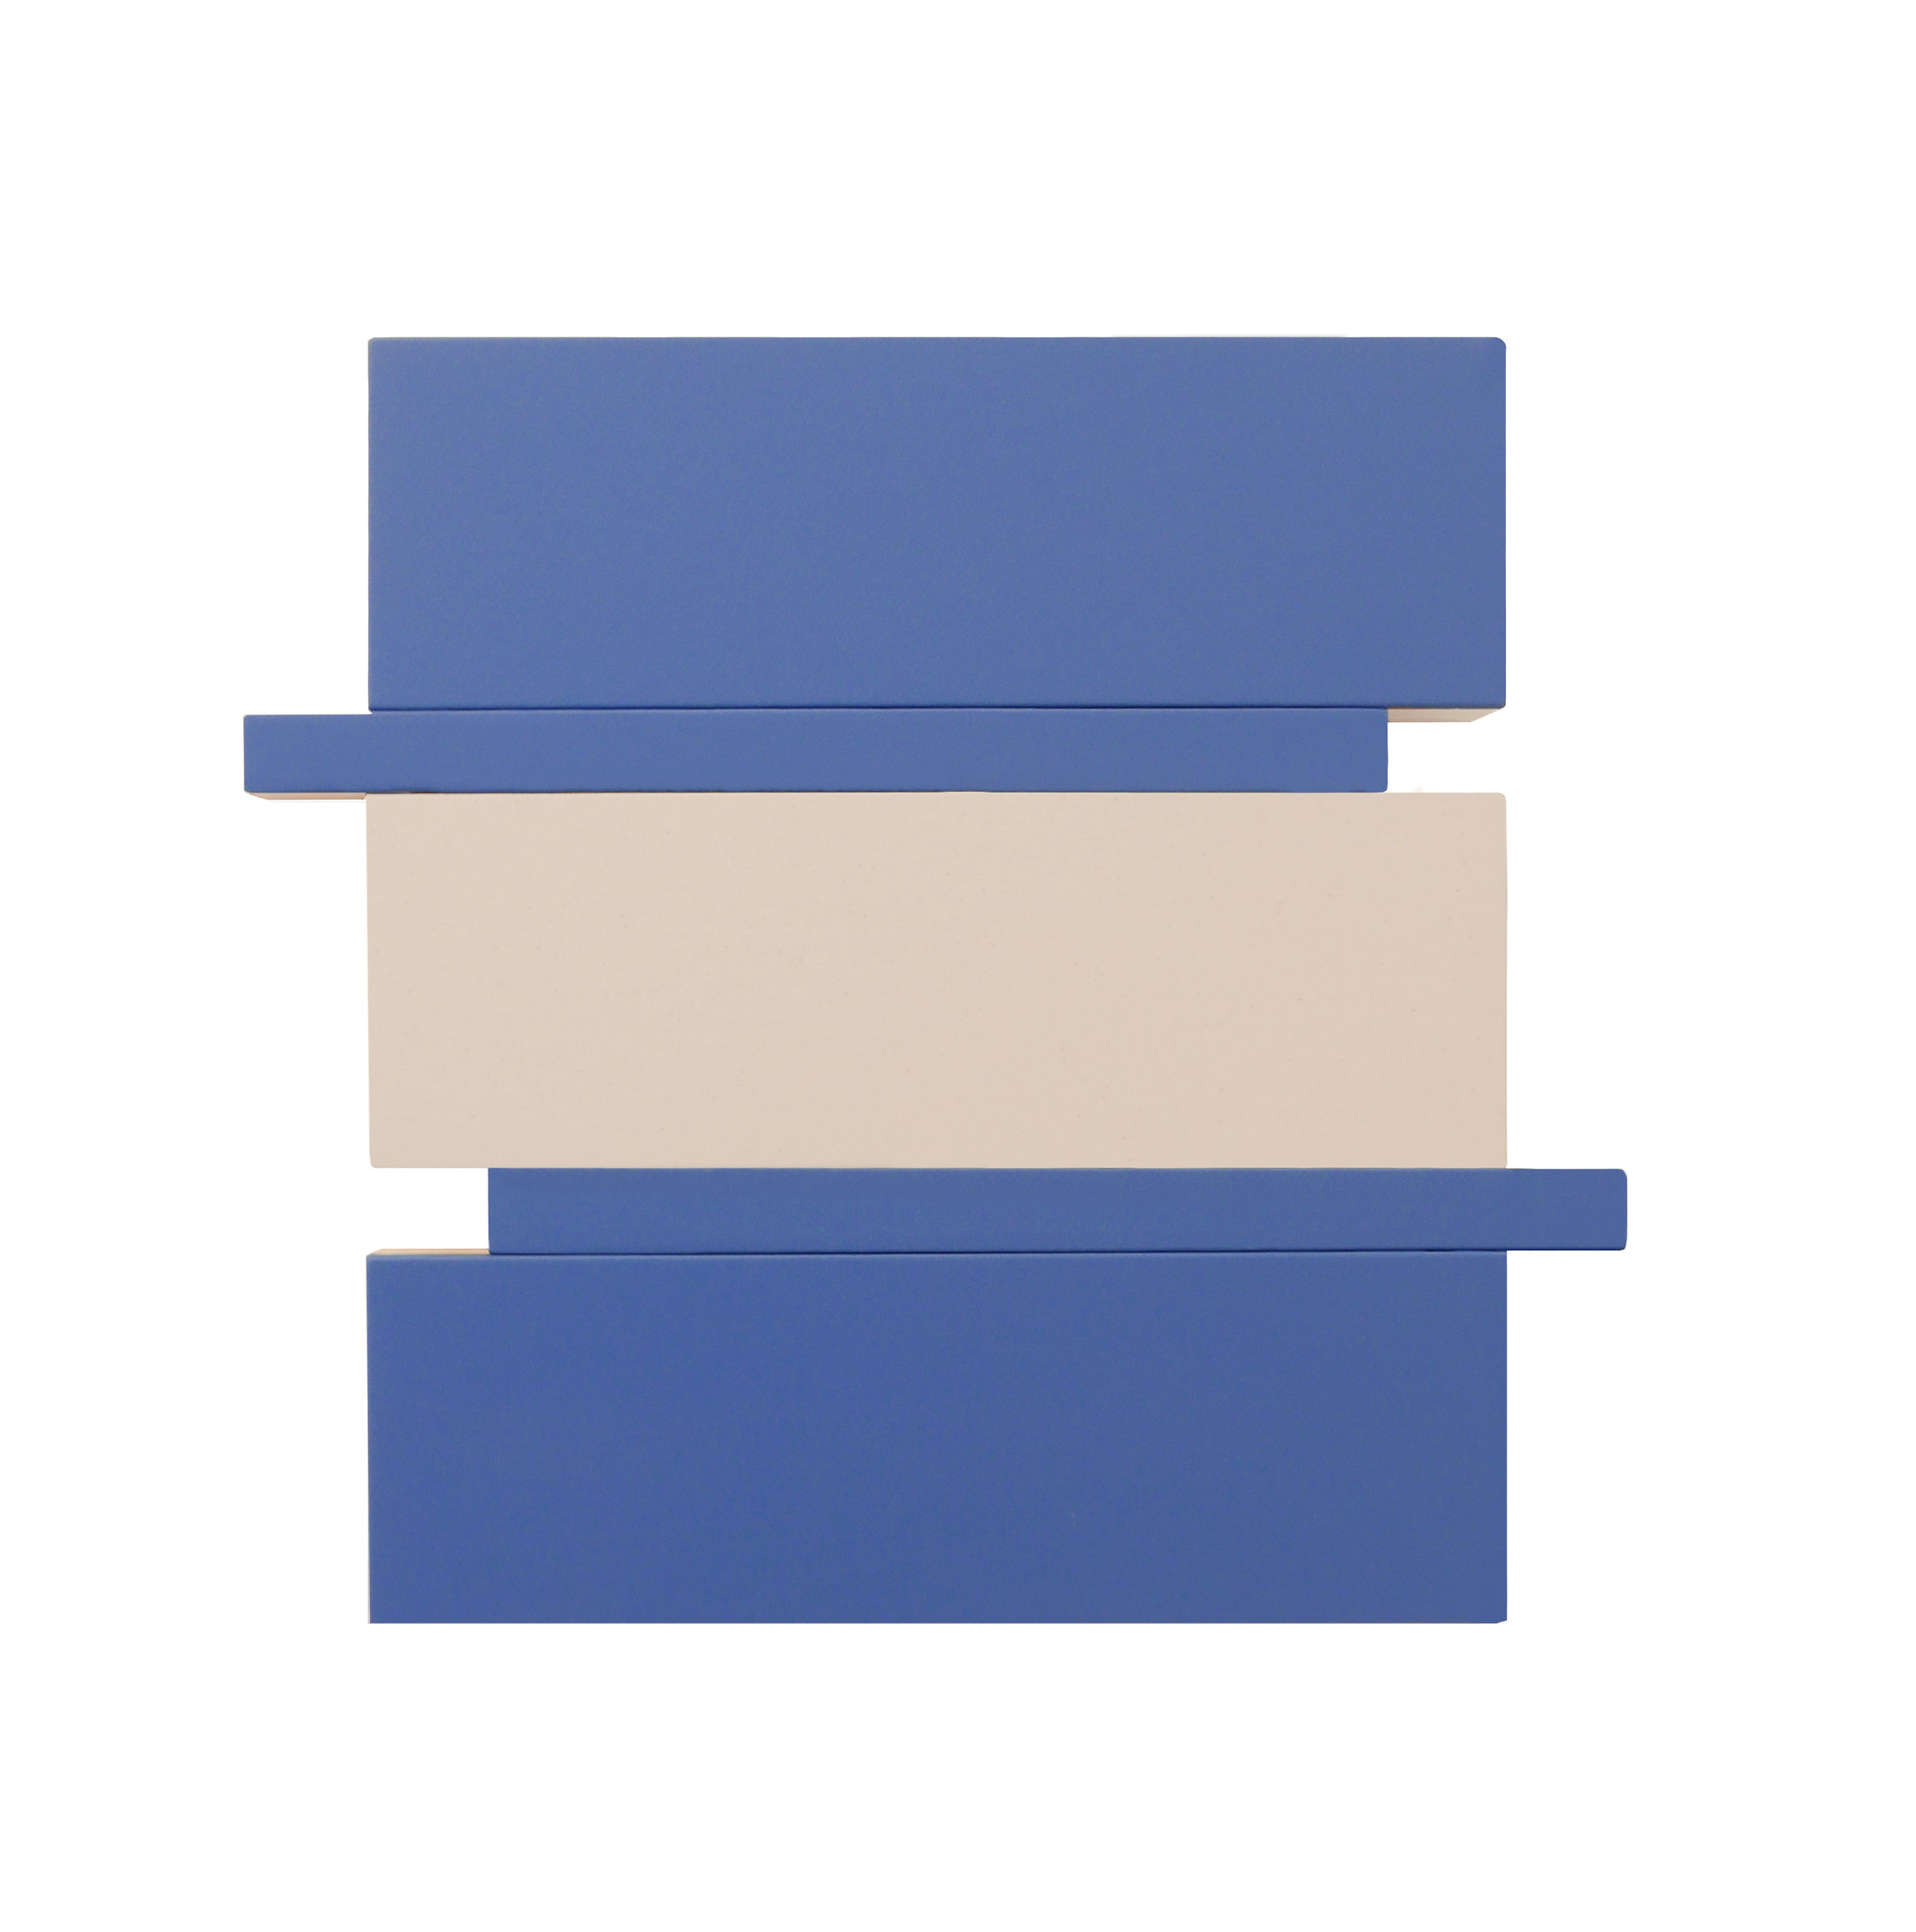 STACK - BLUE, CANVAS